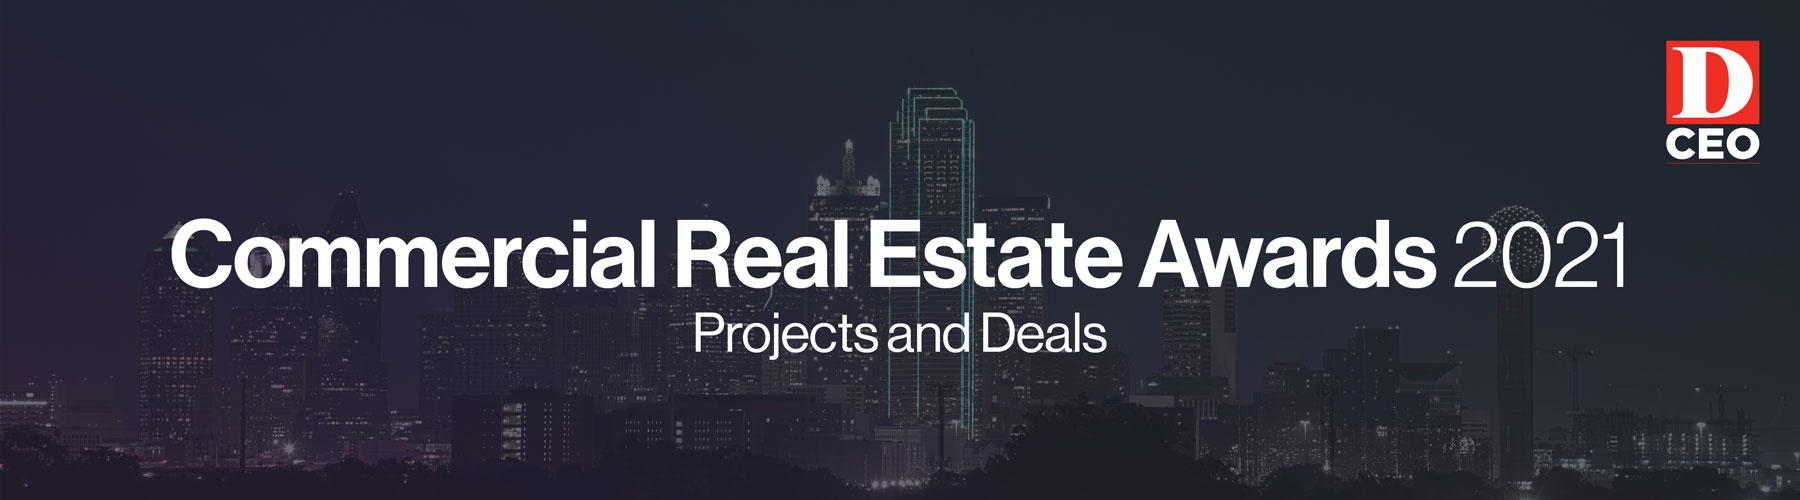 D CEO CRE Projects and Deals